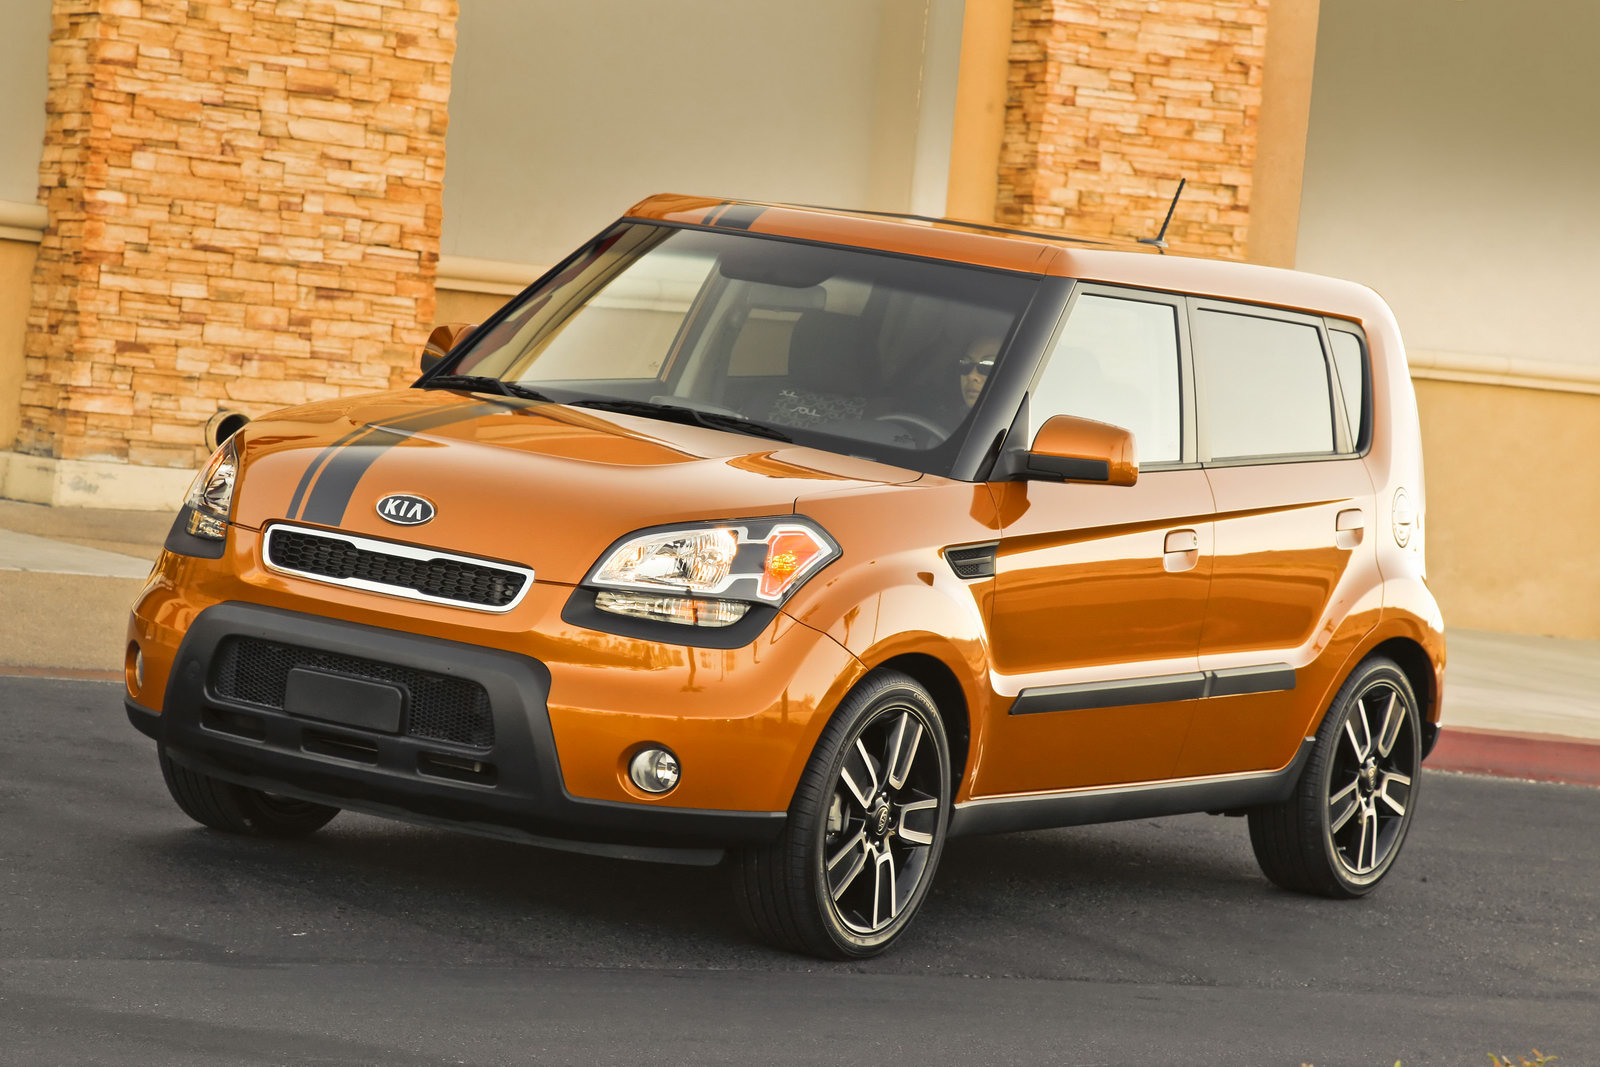 Limited Edition Kia Soul Ignition 100302174 H Jpg